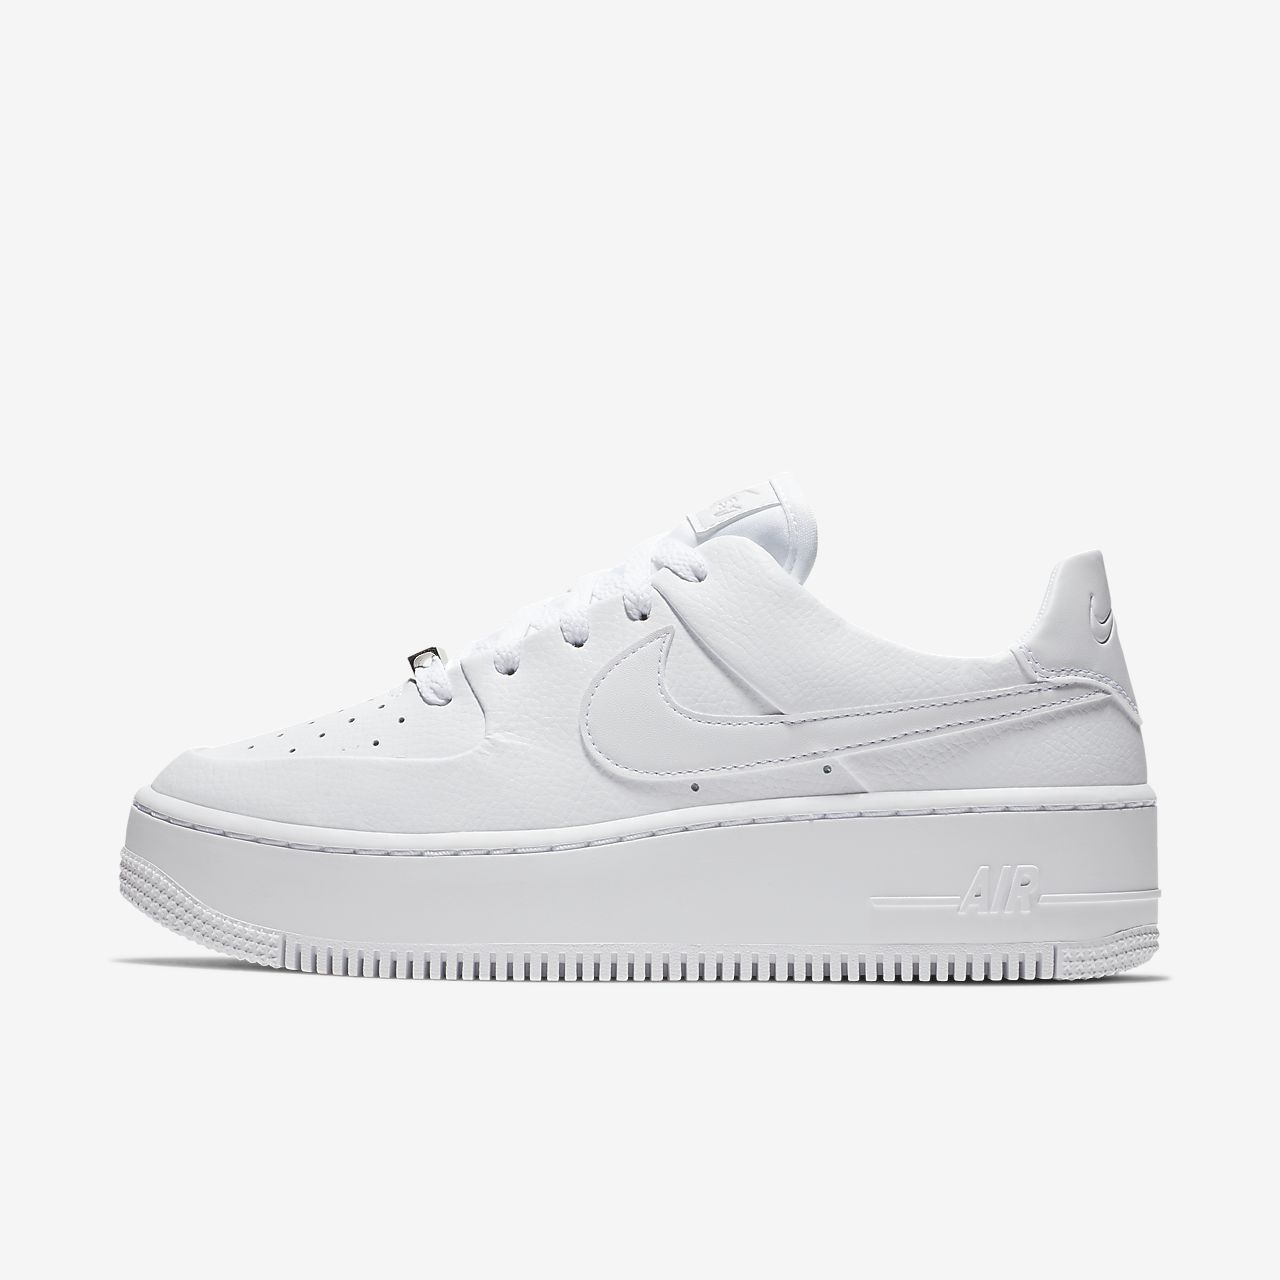 044307948f Air Force 1 Sage Low Women's Shoe | Sneaker love | Nike shoes air ...